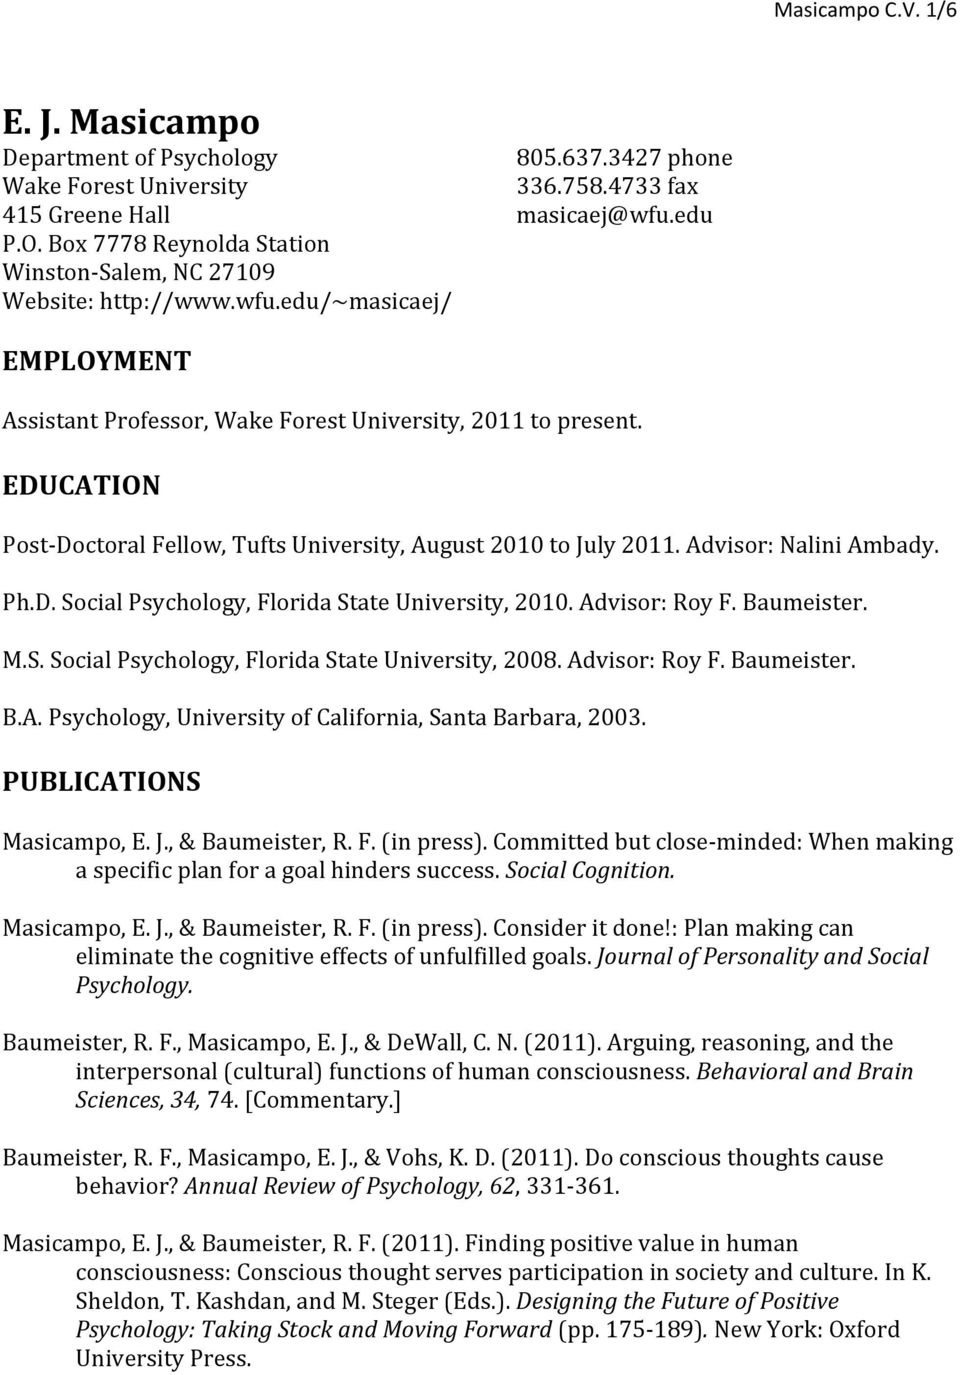 EDUCATION Post-Doctoral Fellow, Tufts University, August 2010 to July 2011. Advisor: Nalini Ambady. Ph.D. Social Psychology, Florida State University, 2010. Advisor: Roy F. Baumeister. M.S. Social Psychology, Florida State University, 2008.